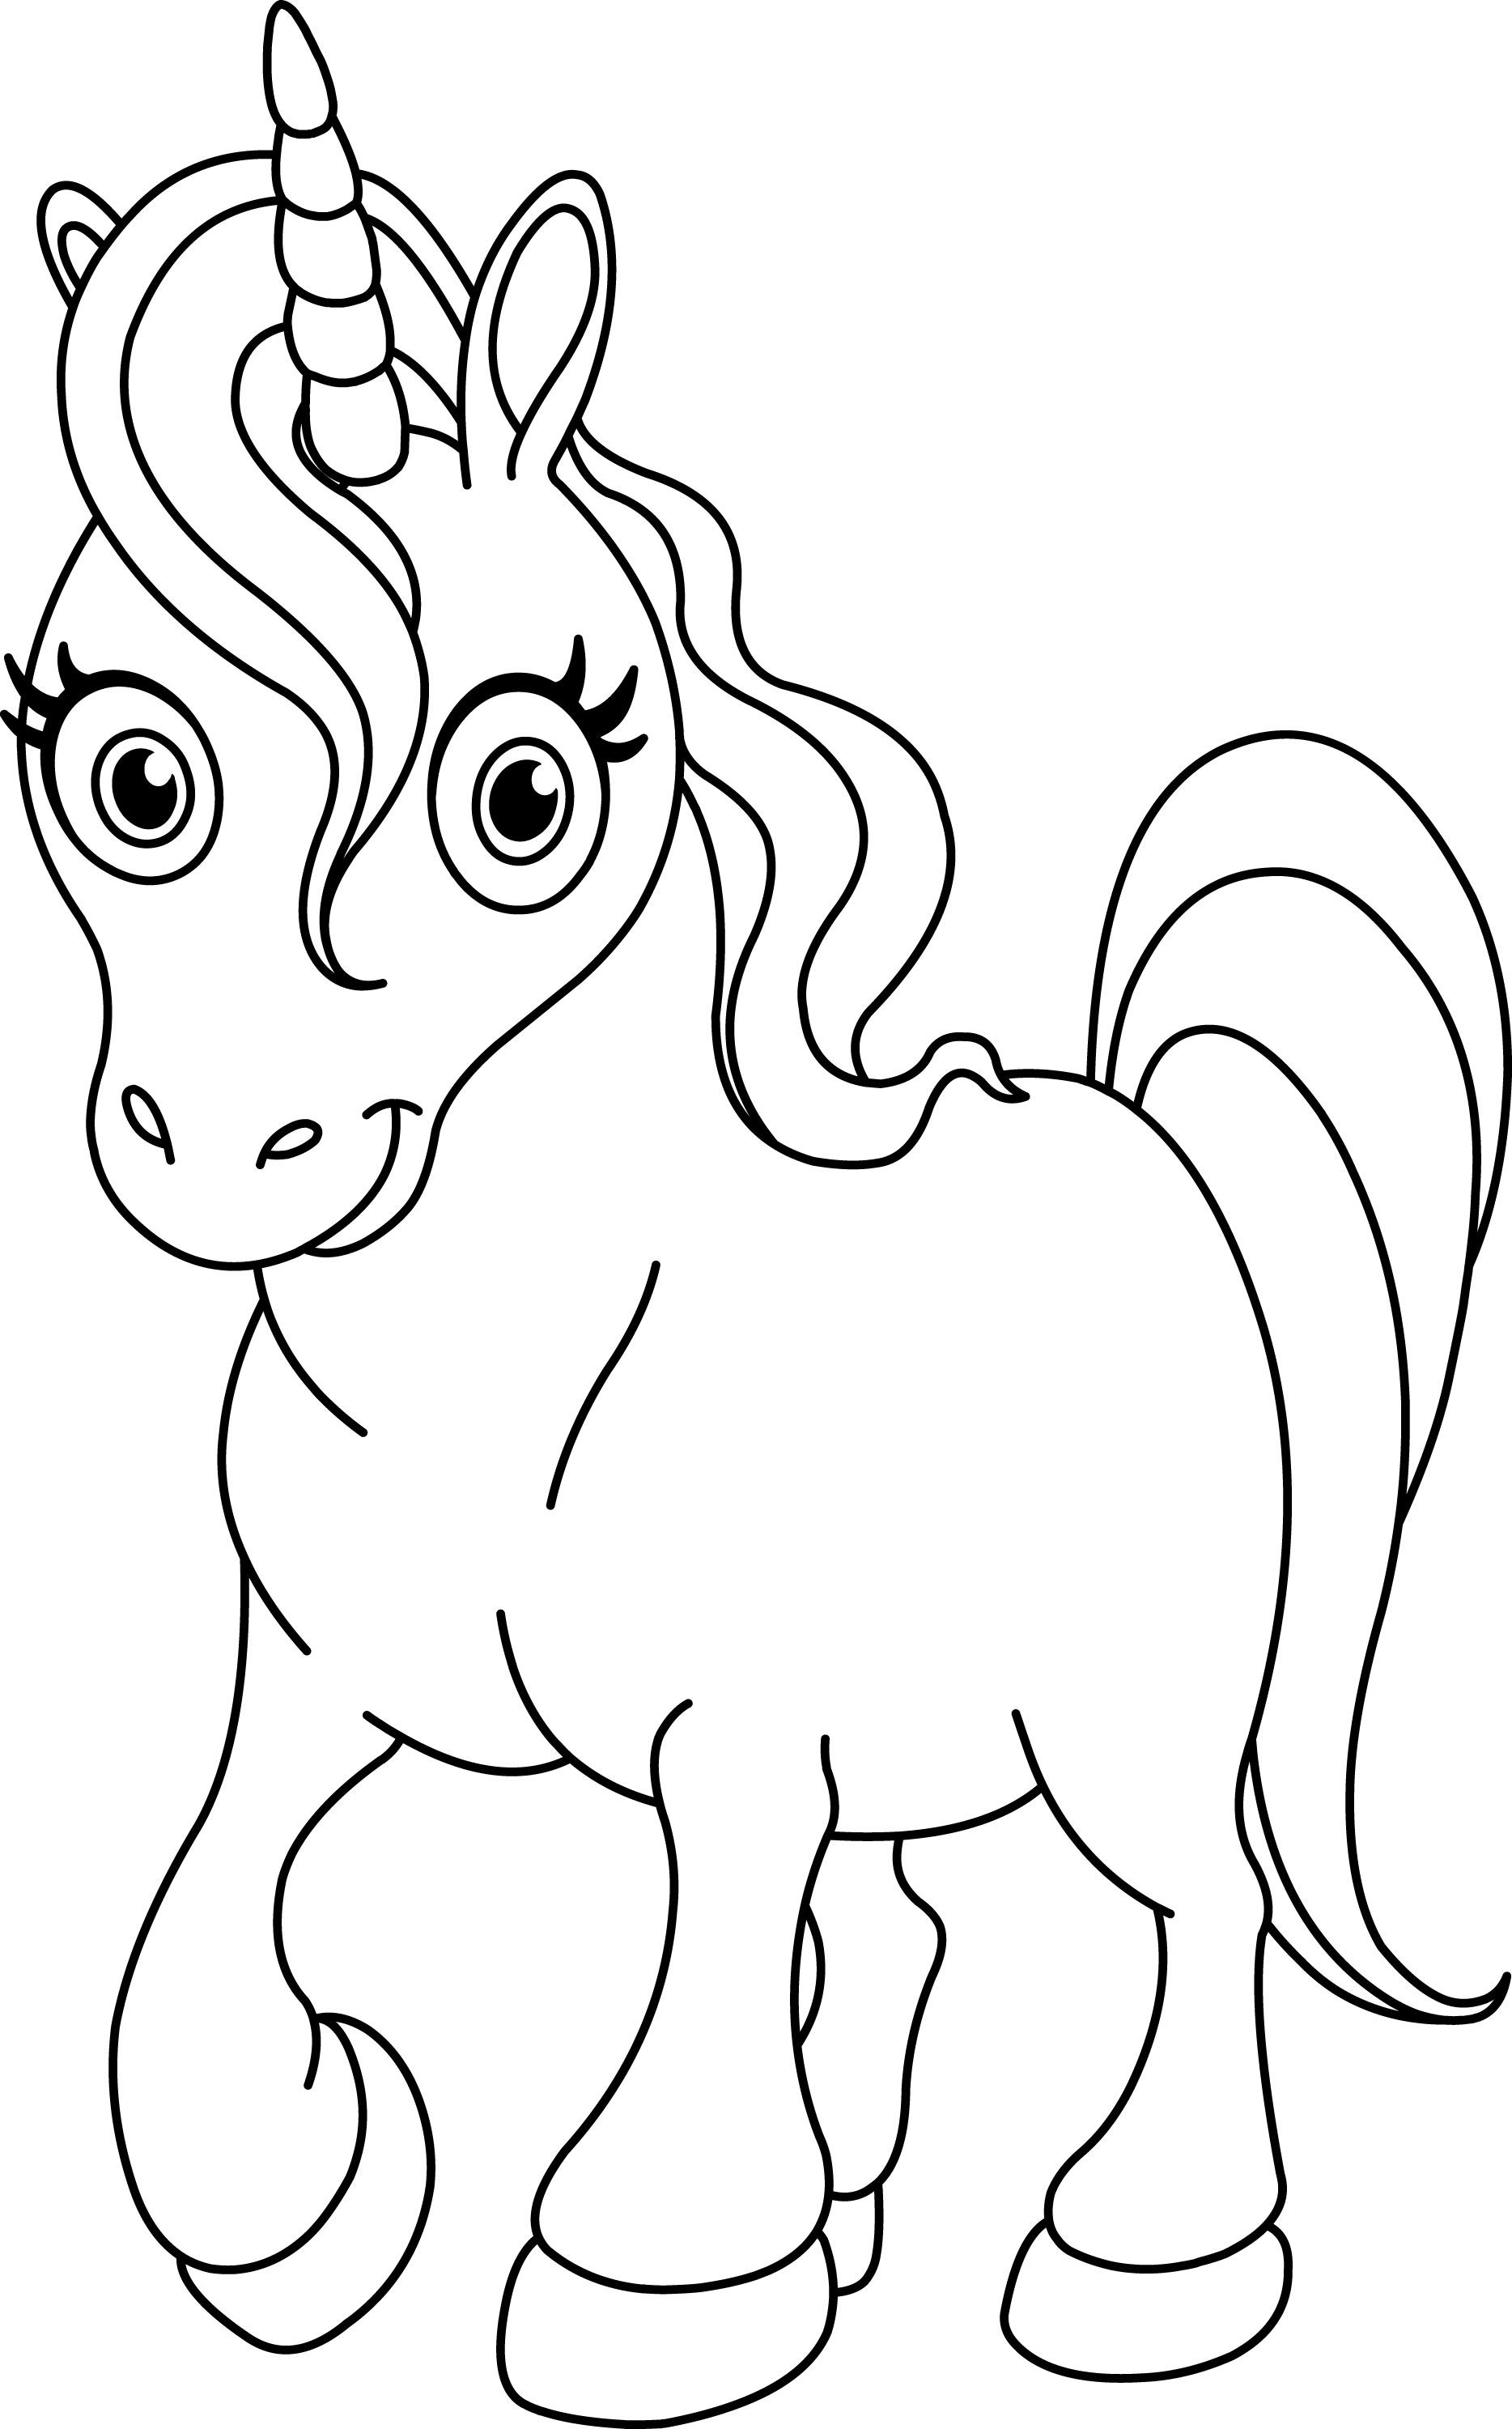 pay attention for this explanation to do the unicorn coloring pages printable - Coloring Pages Unicorns Printable